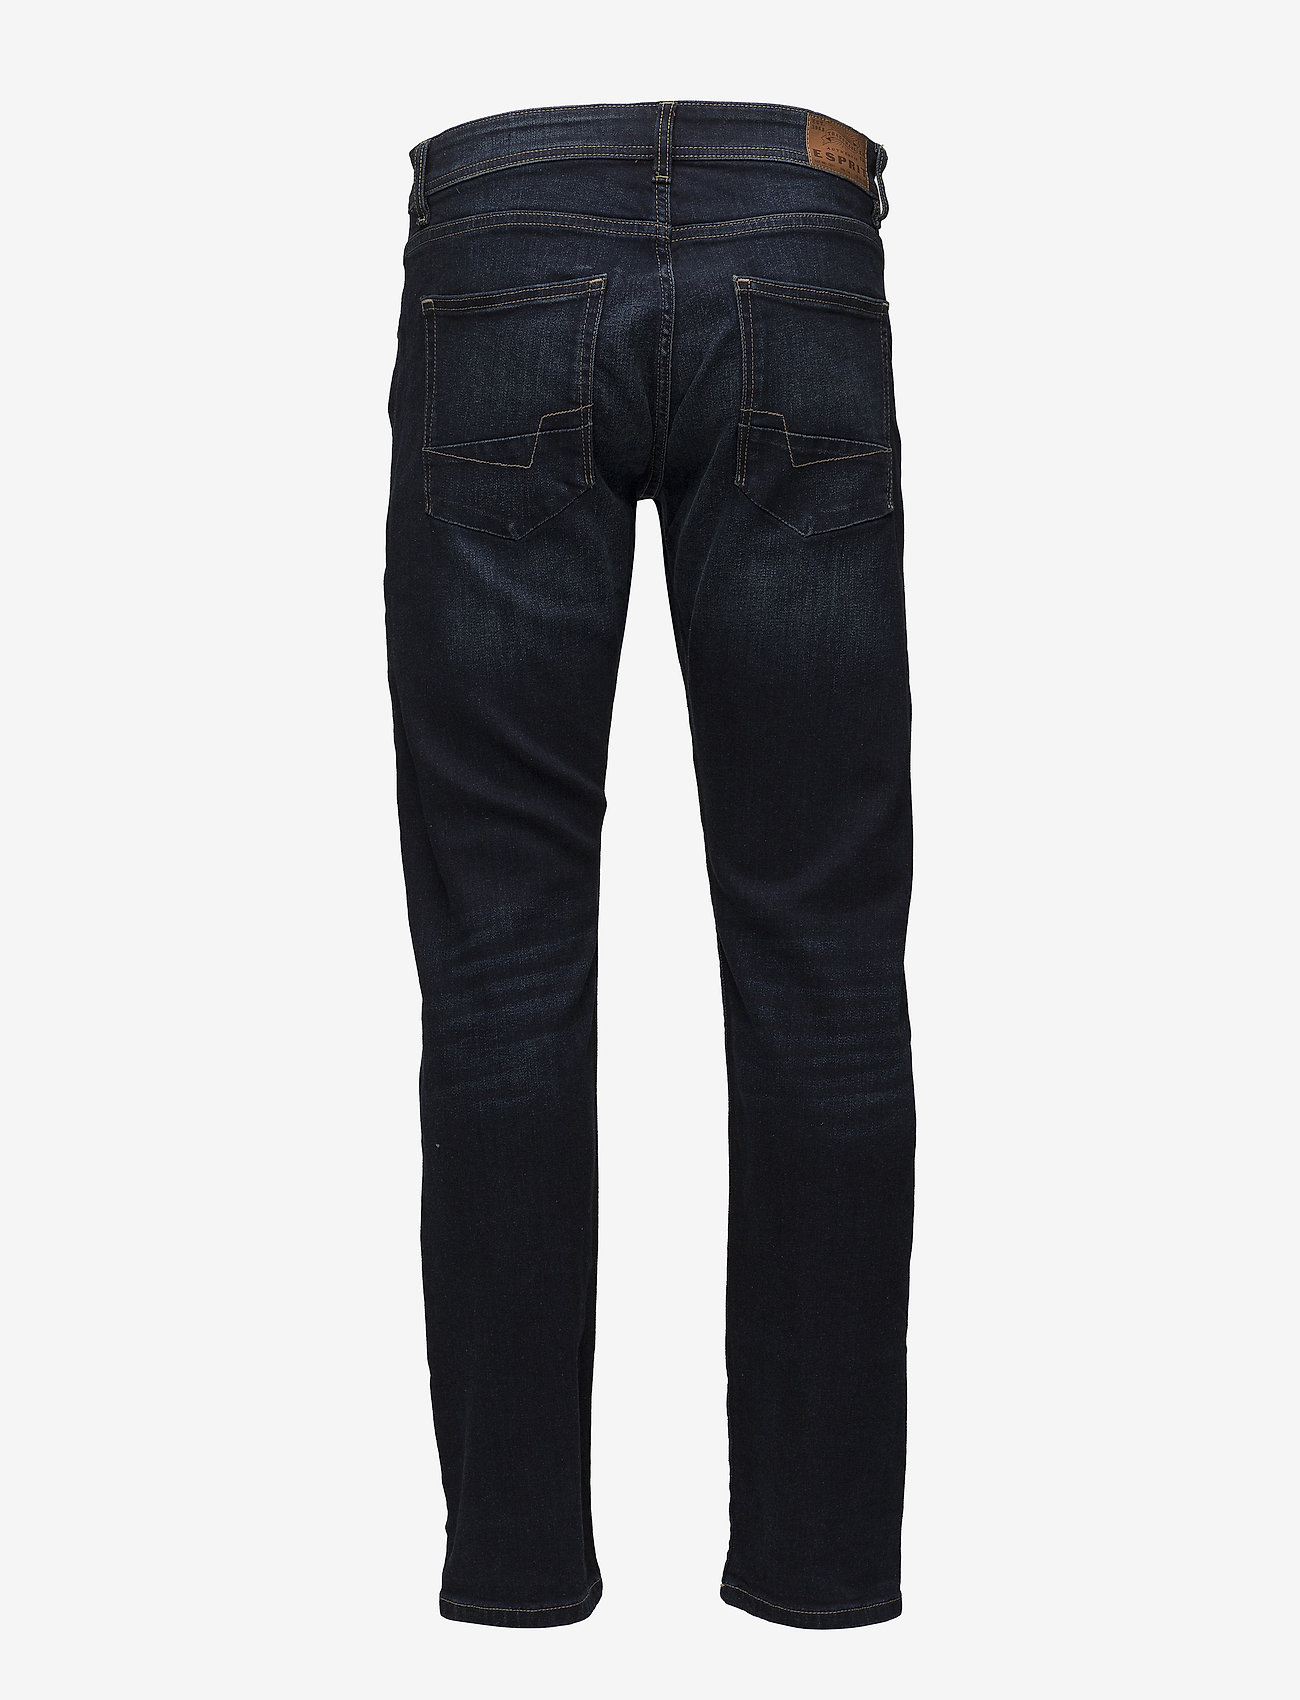 Esprit Casual - Pants denim - regular jeans - blue dark wash - 1